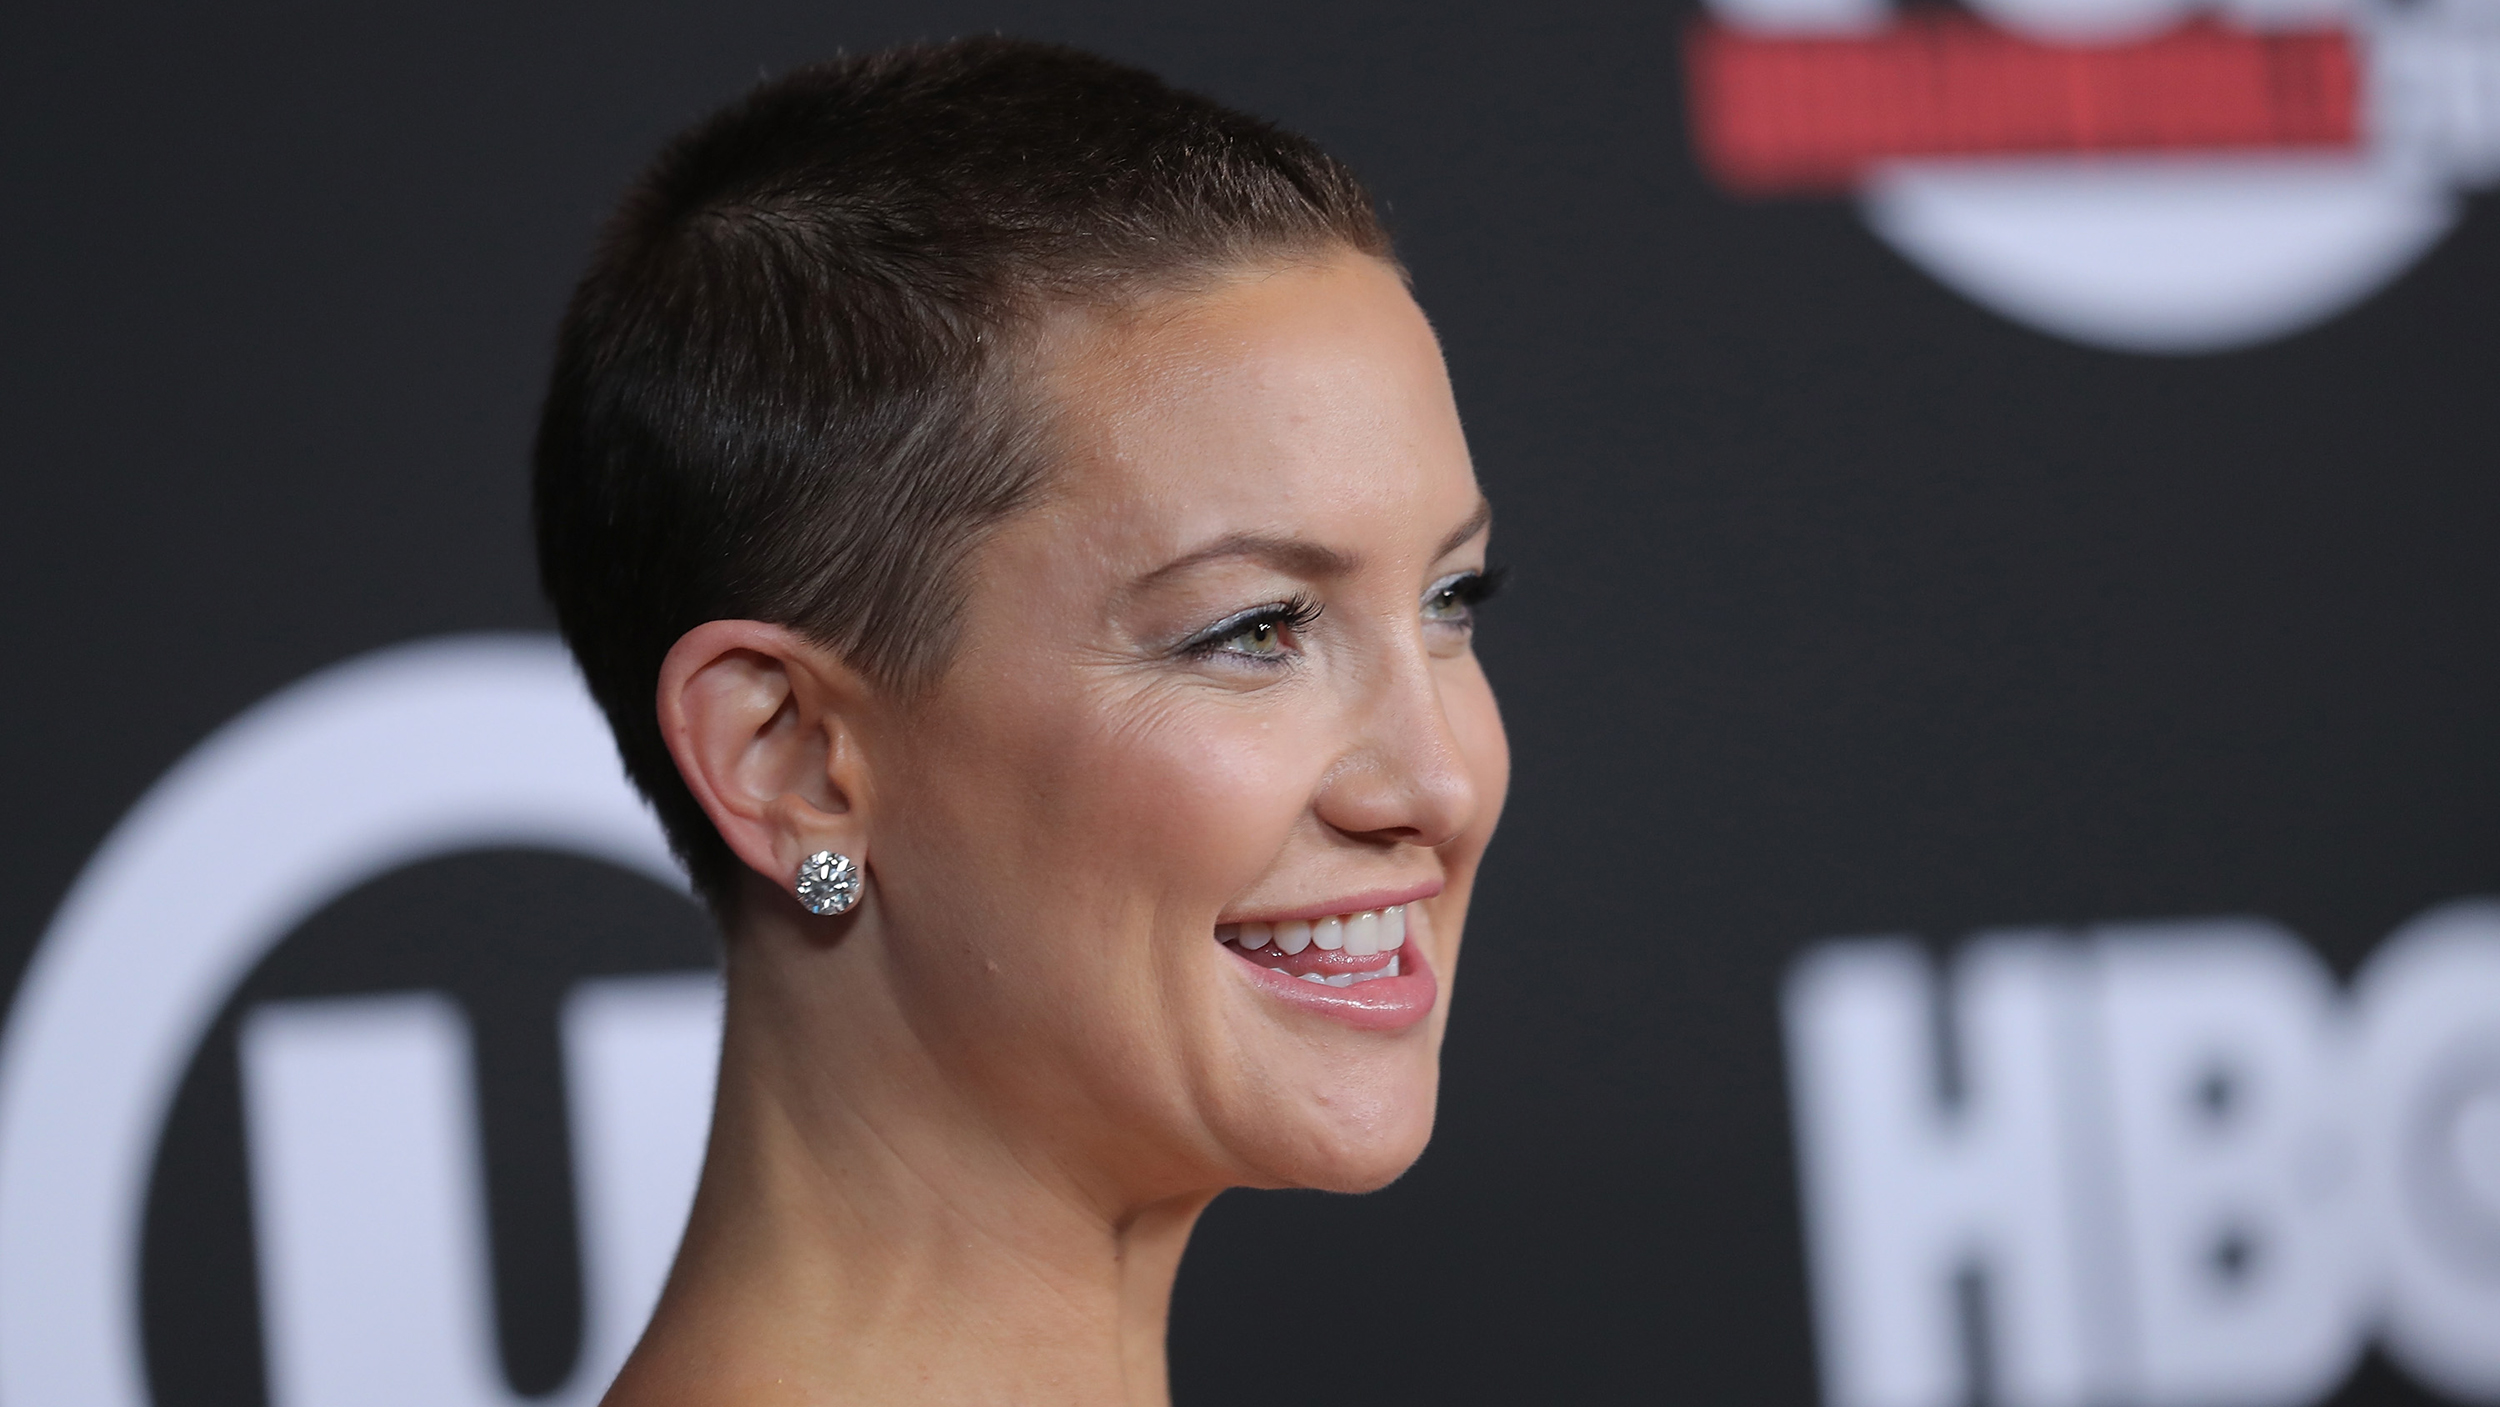 Kate Hudson Rocks A Buzz Cut And Stella Mccartney Dress